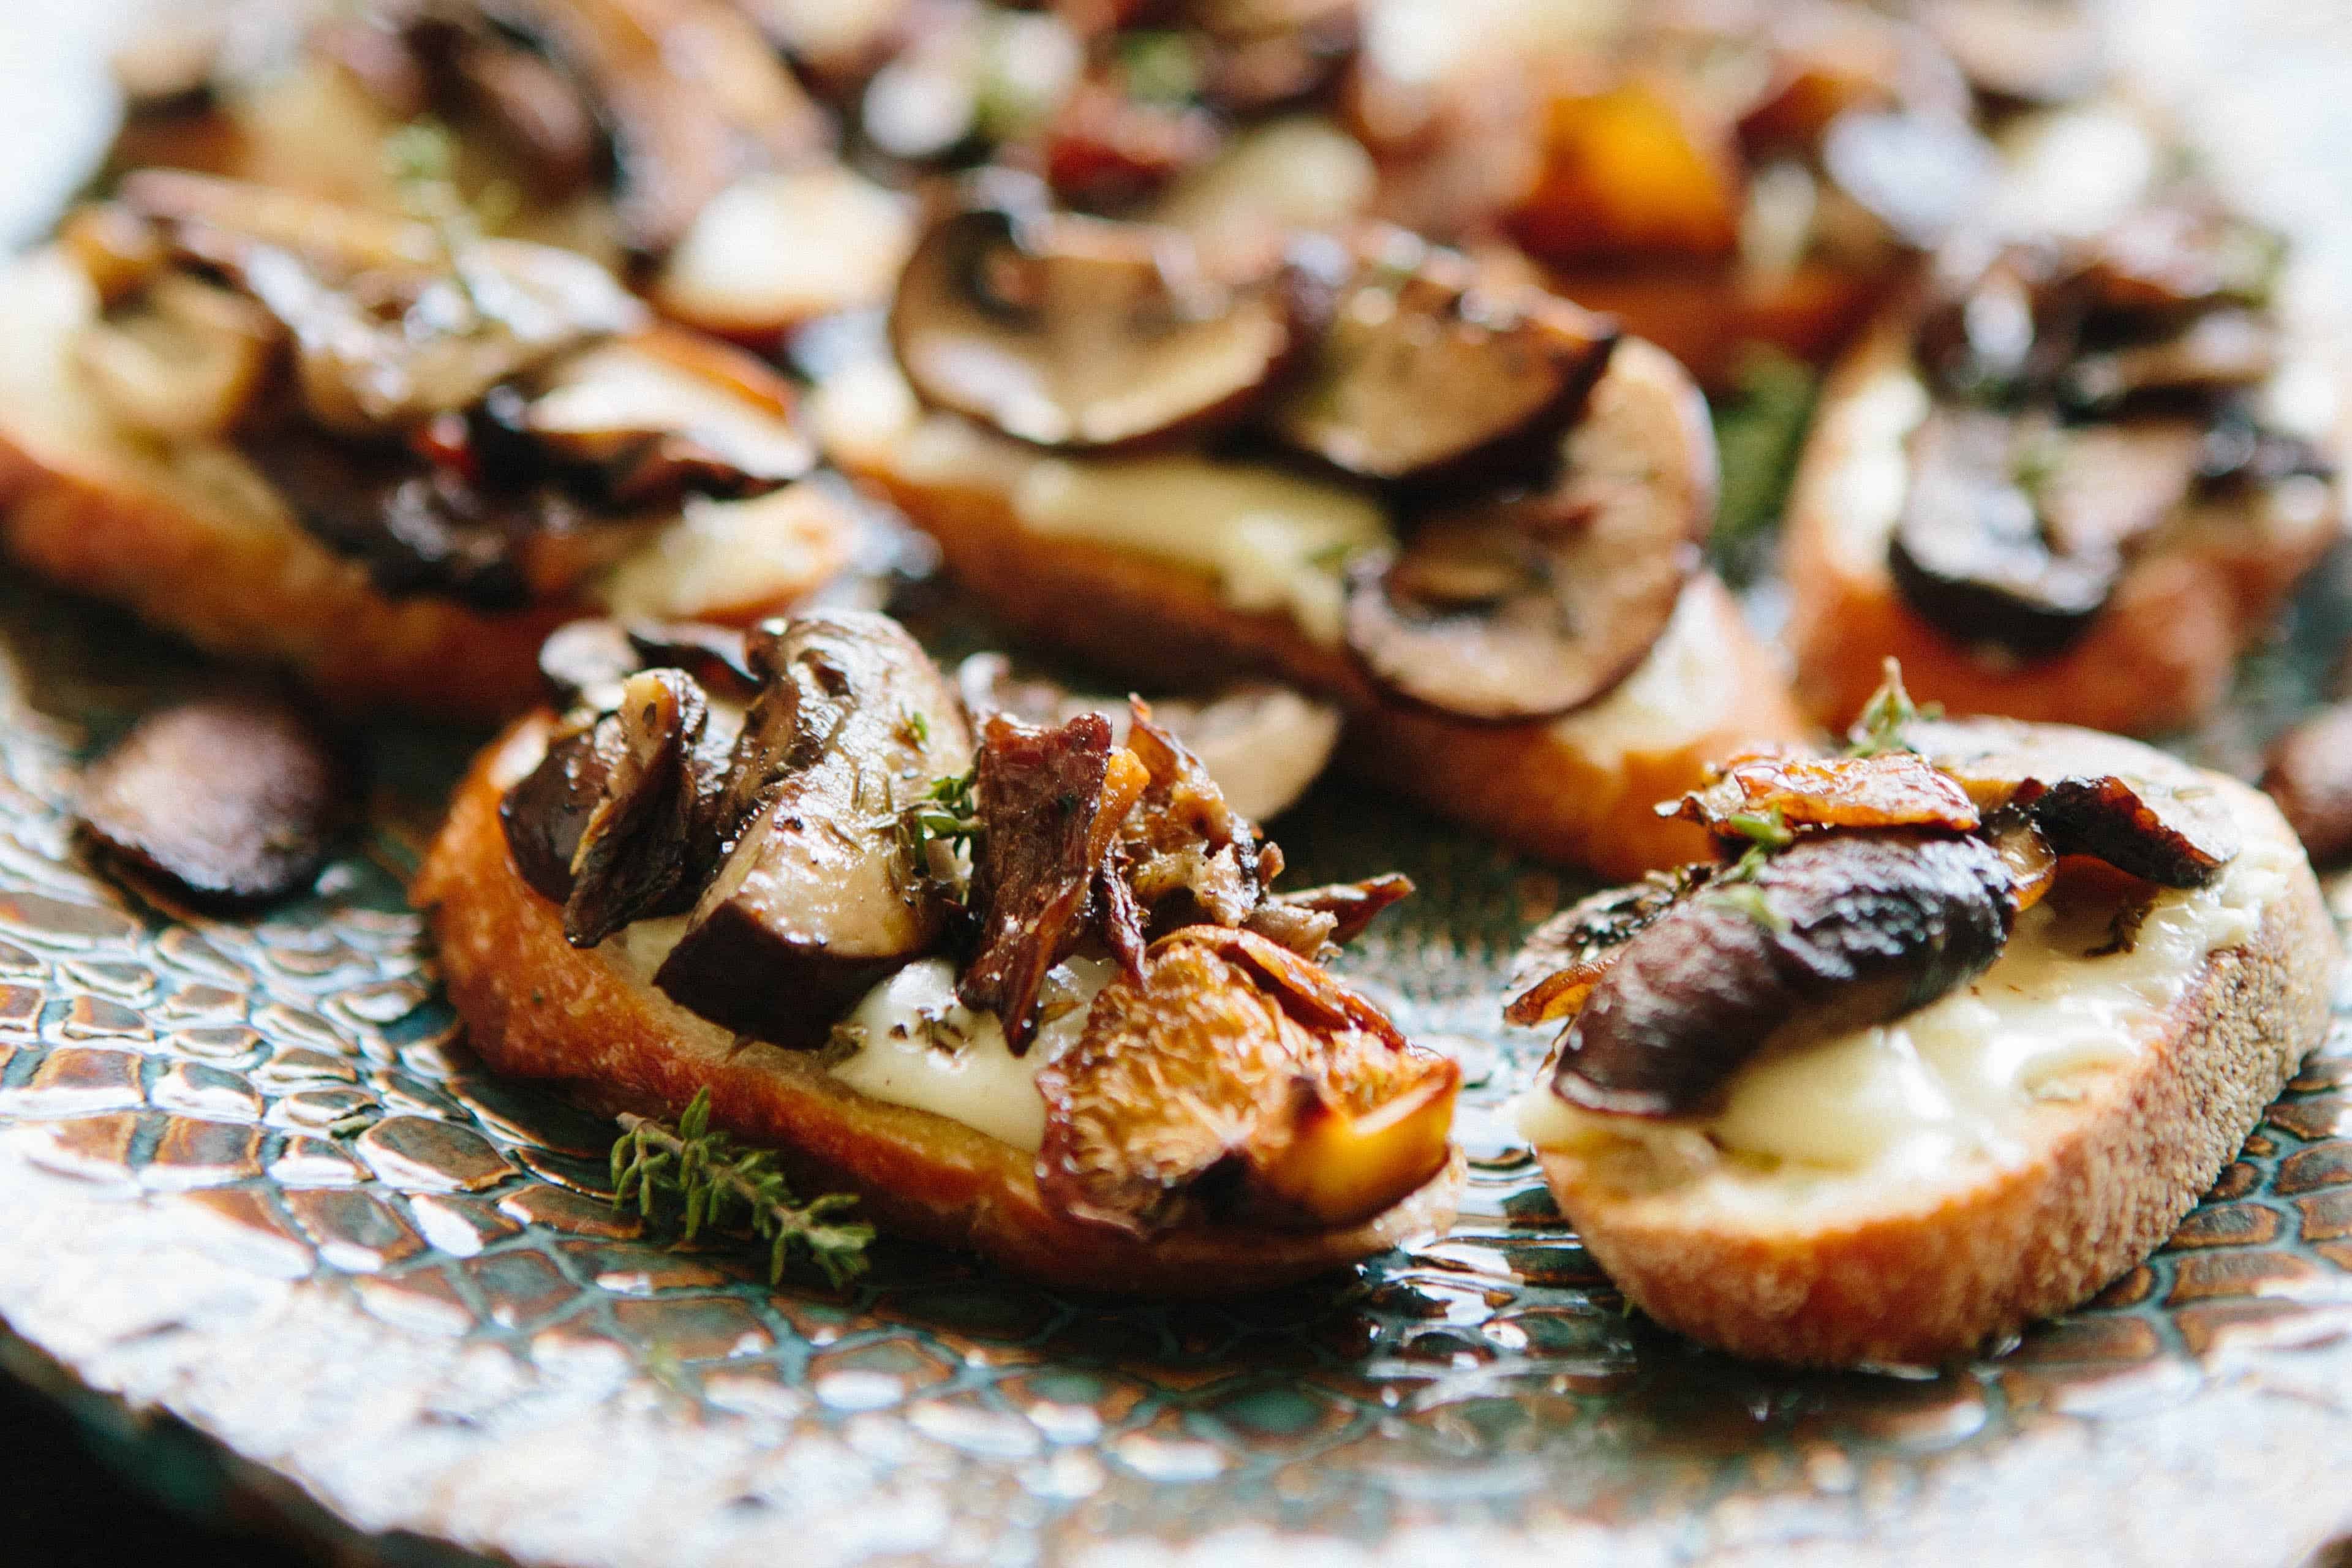 A close up of crostini on a serving platter topped with cheese and roasted mushrooms.